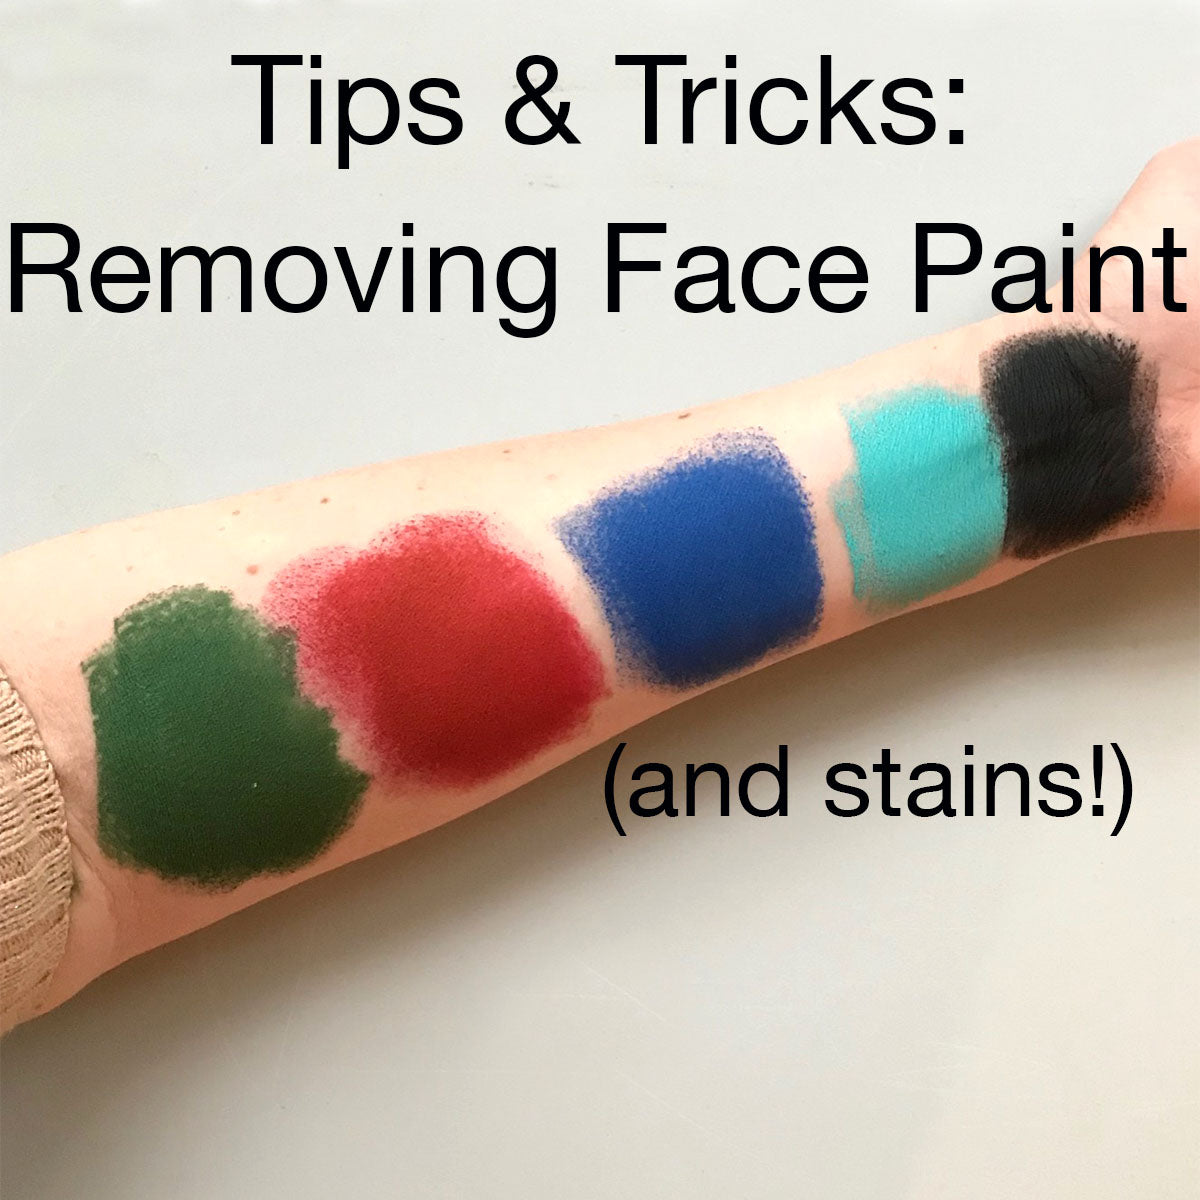 How To Remove Face Paint and Stains